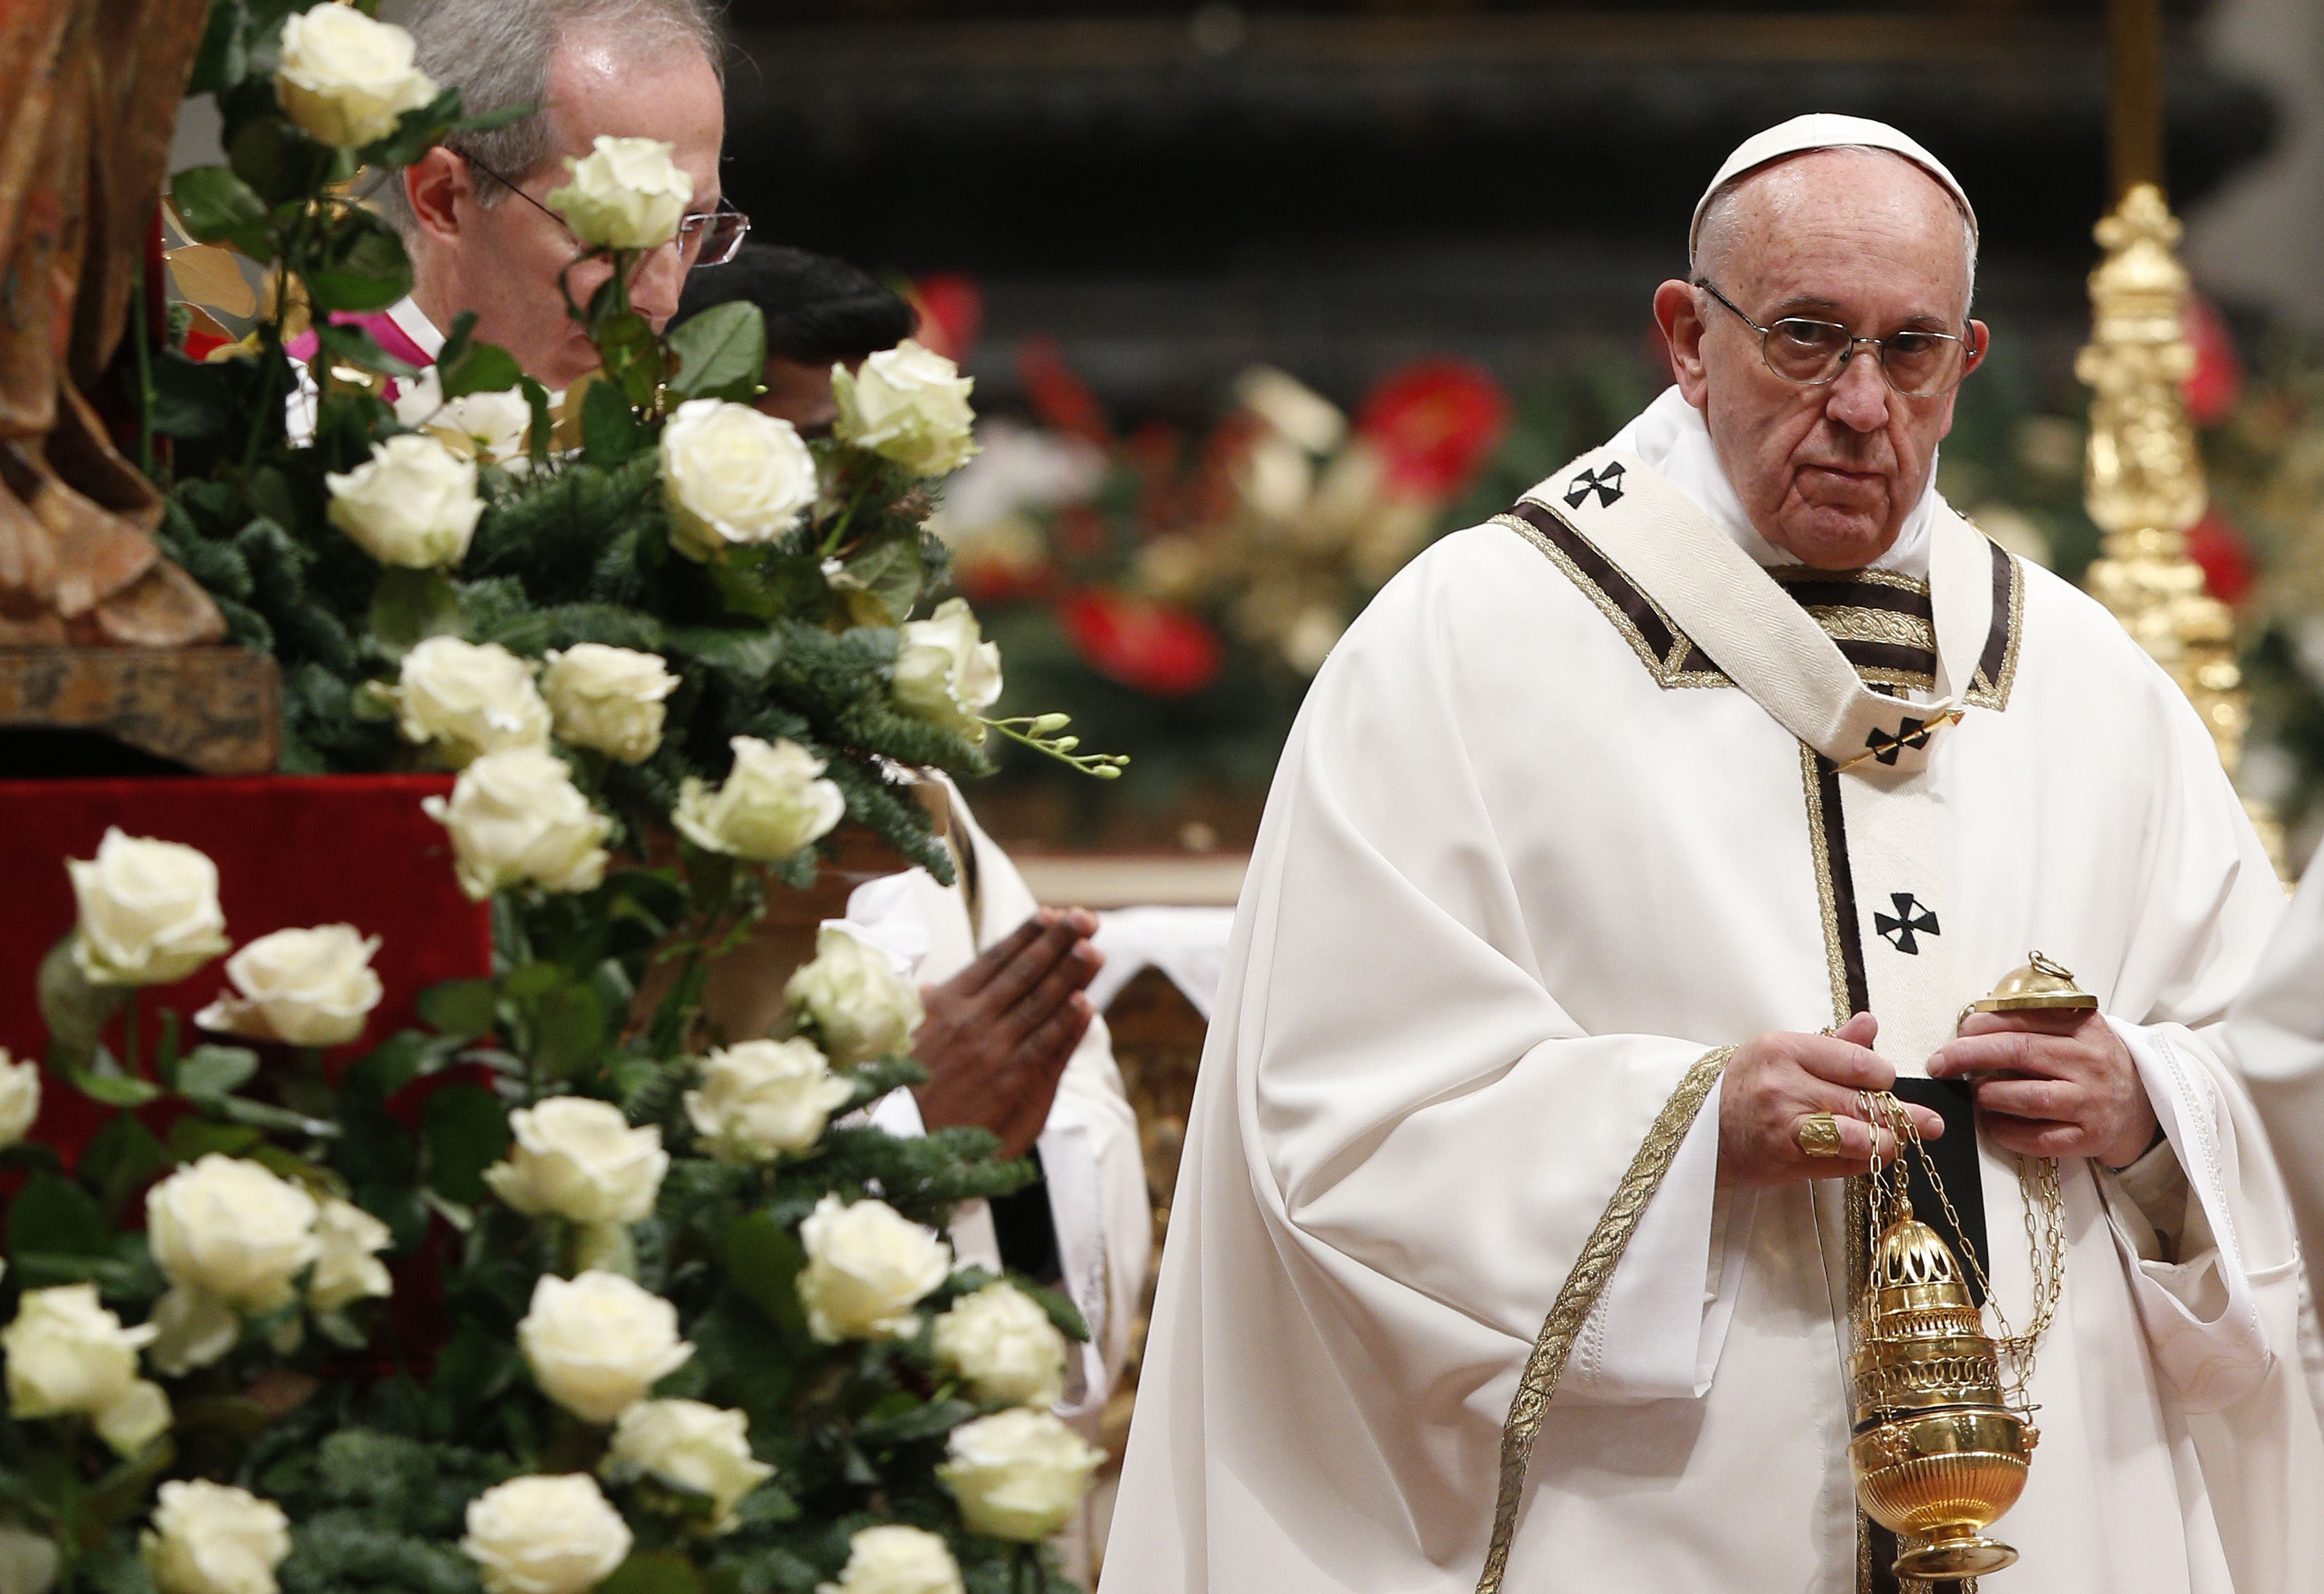 Pope Francis burns incense as he celebrates Christmas Eve Mass in Peter's Basilica at the Vatican Dec. 24. (CNS photo/Paul Haring)